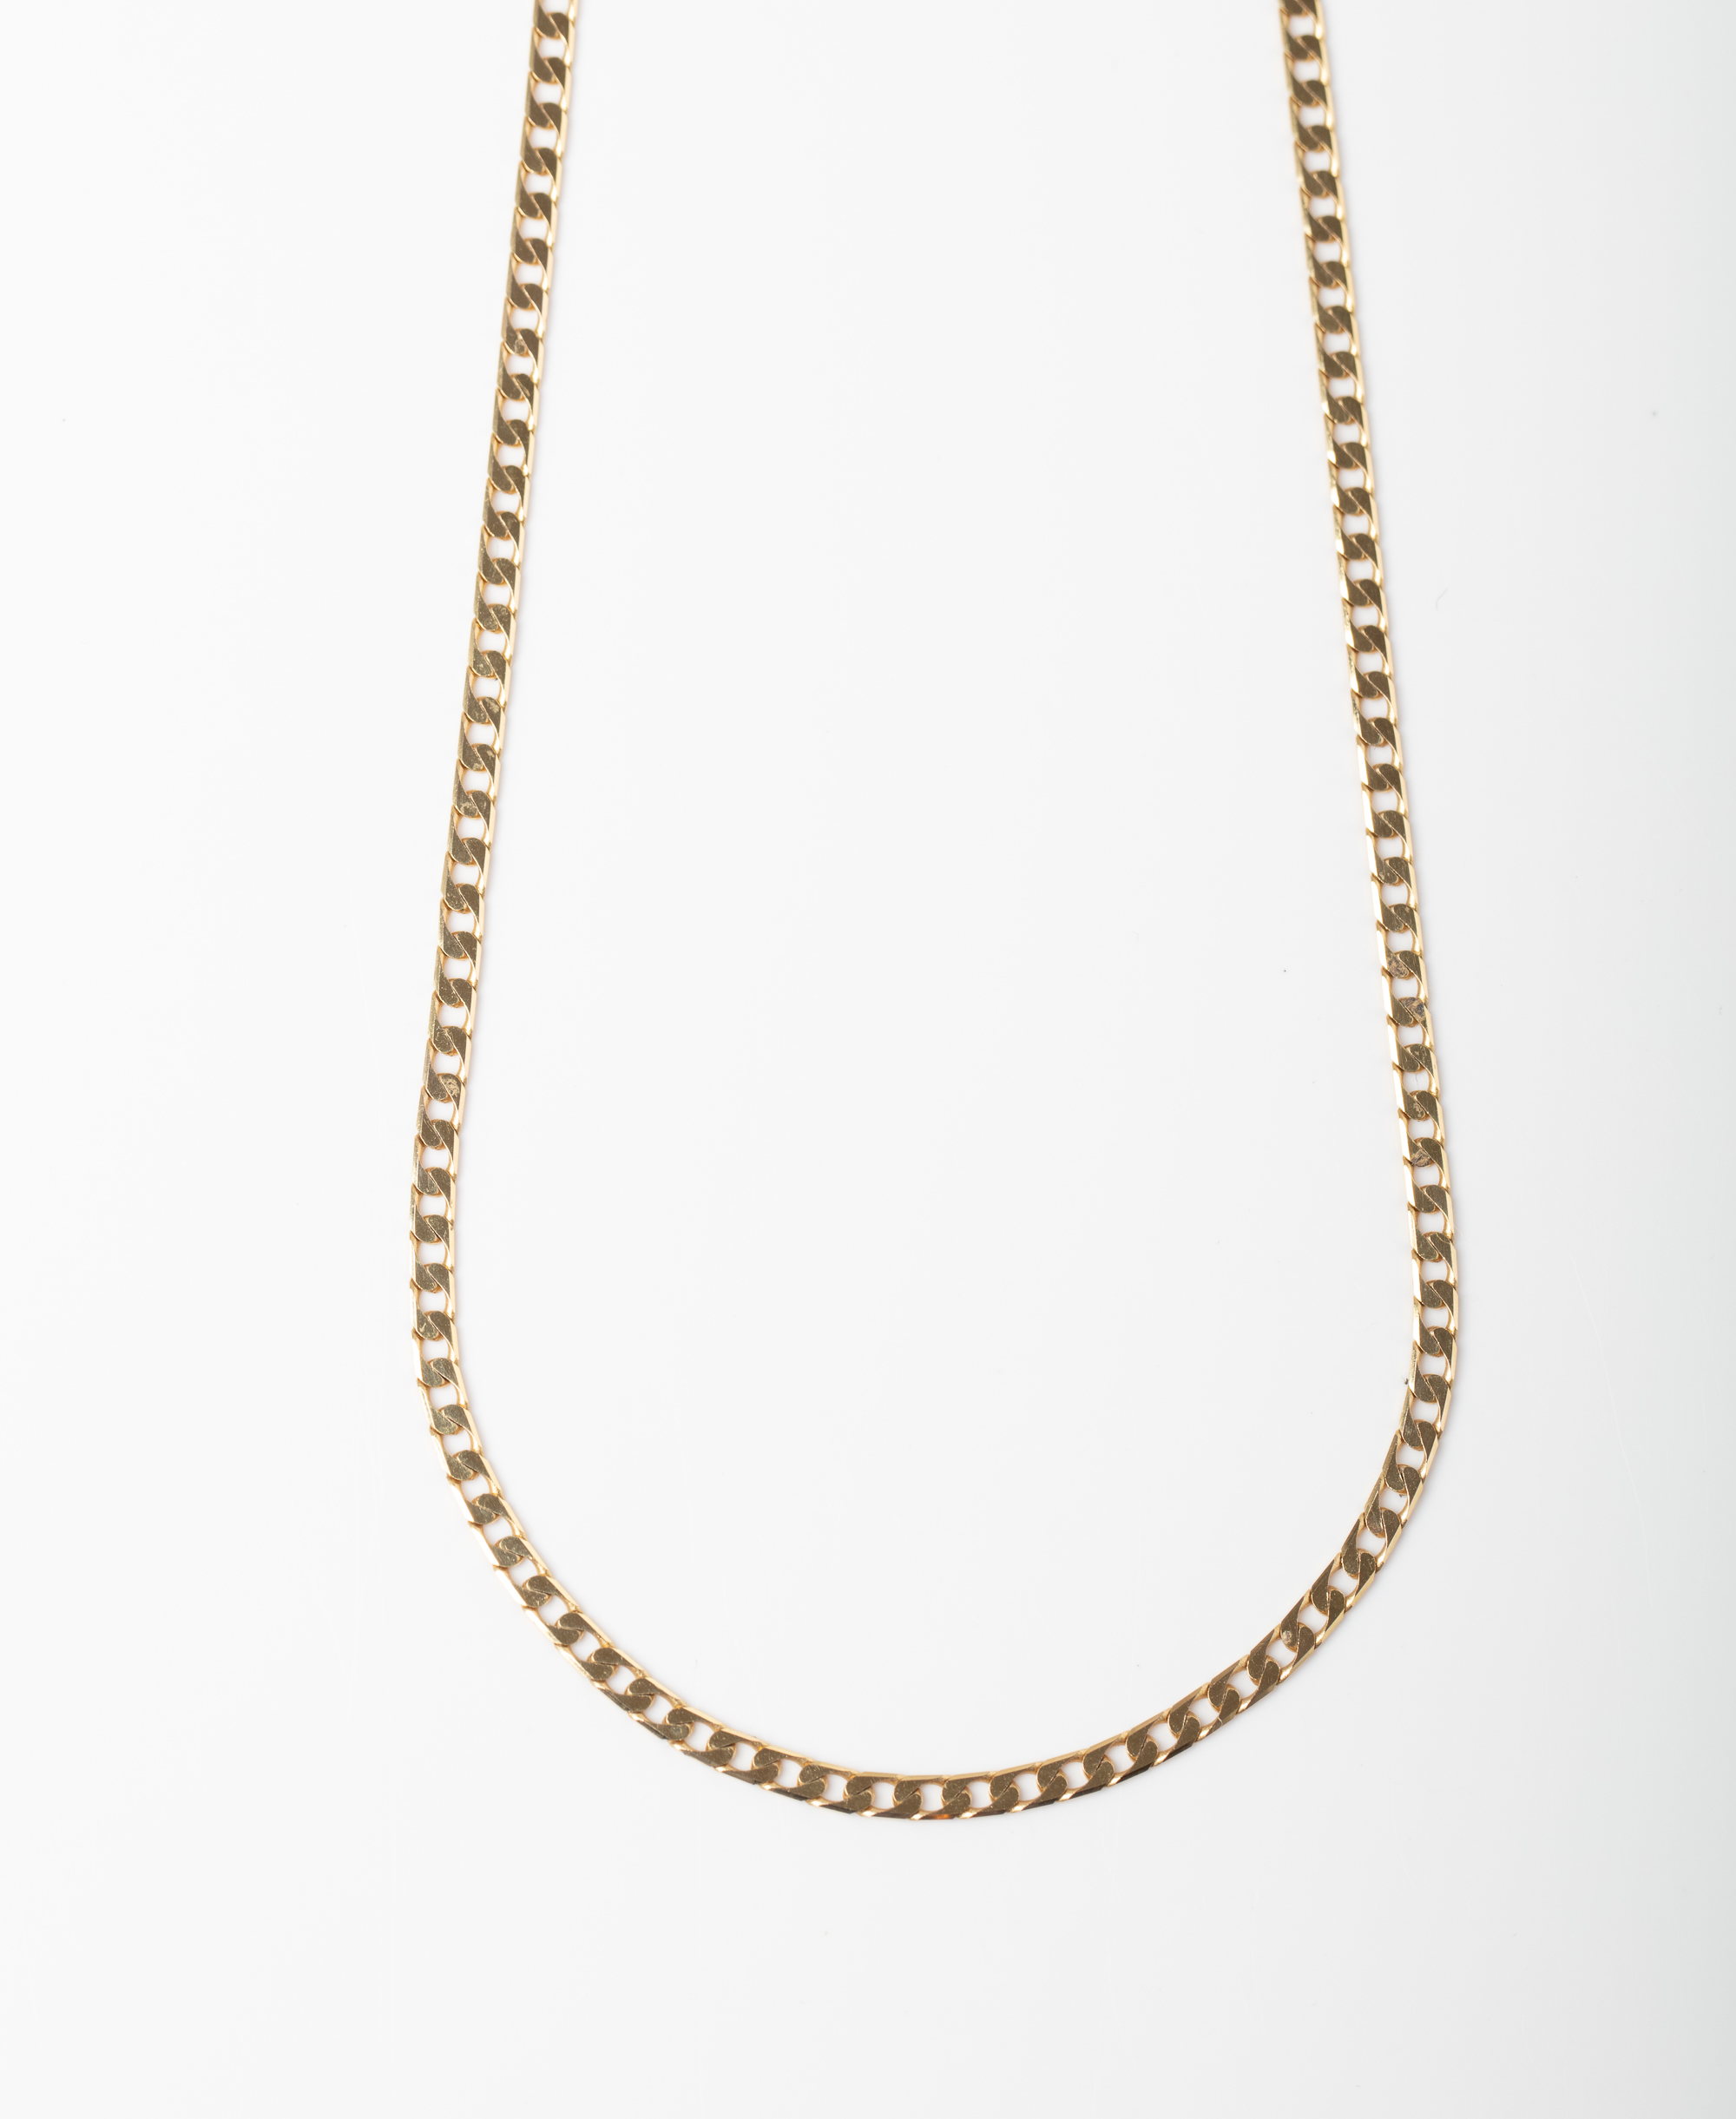 A 9CT GOLD SQUARE CURB CHAIN